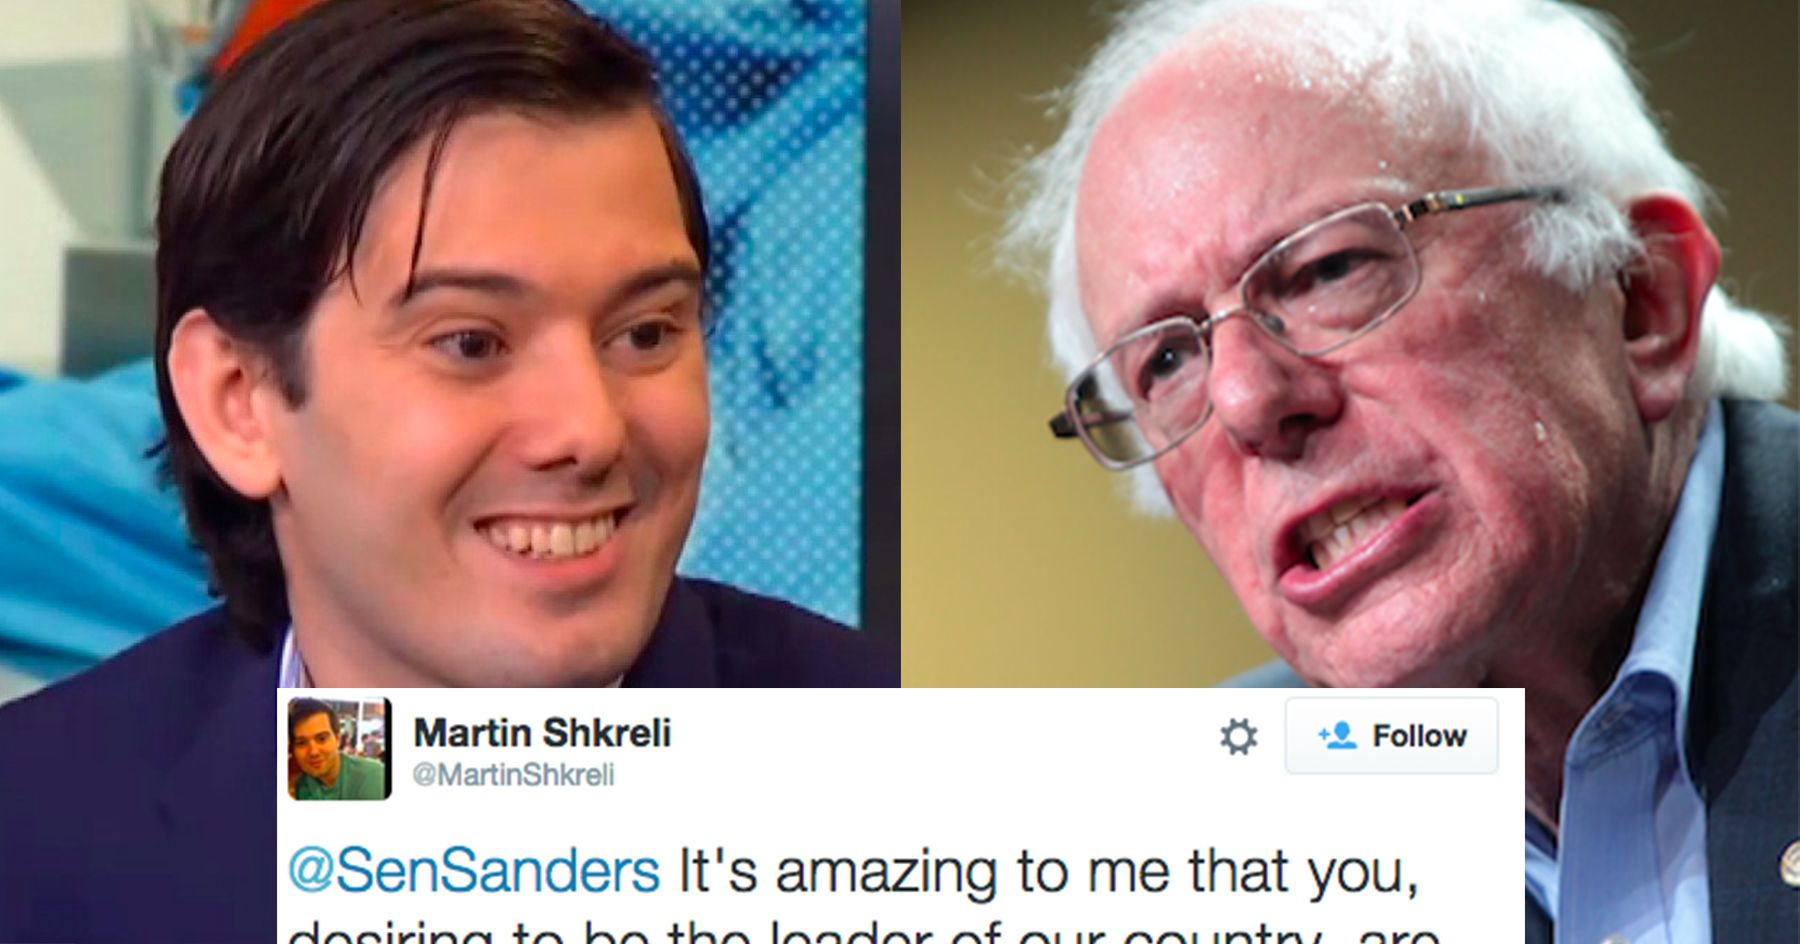 Big Pharma CEO Martin Shkreli pledged his support and donated to Bernie Sanders this week. So how did Bernie respond? By taking the money and giving it to a health clinic in Washington.